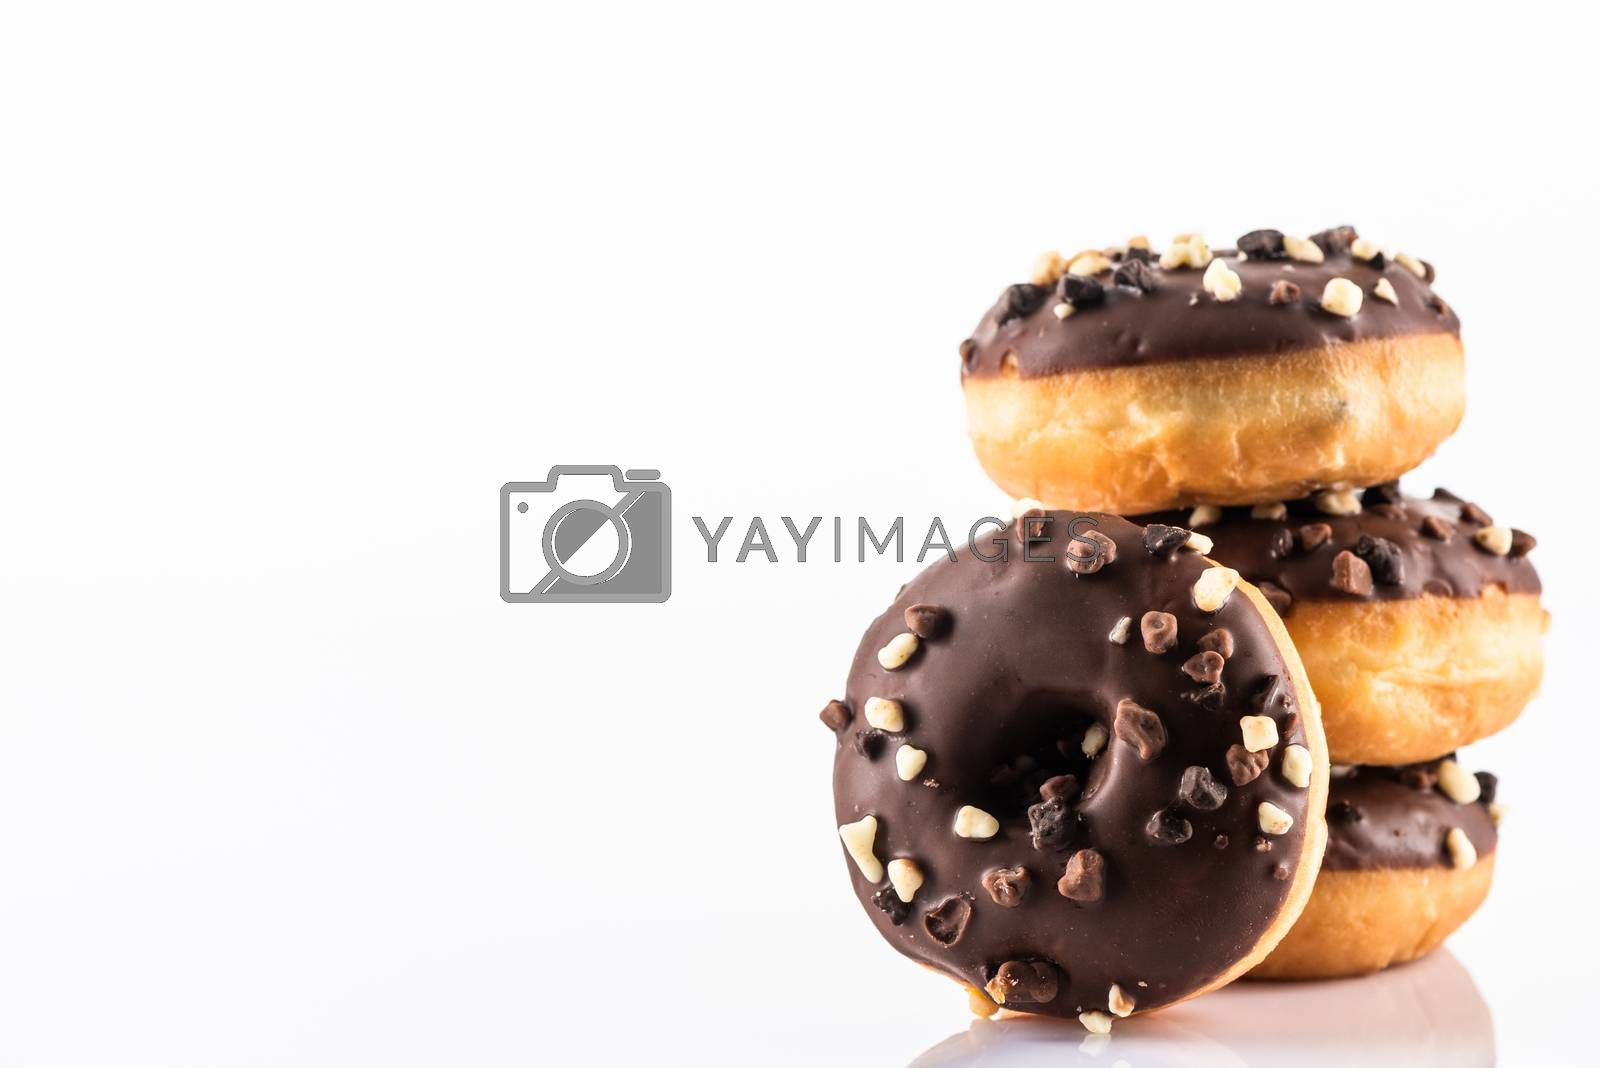 Chocolate Donut or Doughnuts on White Reflective Background with Copy Space.